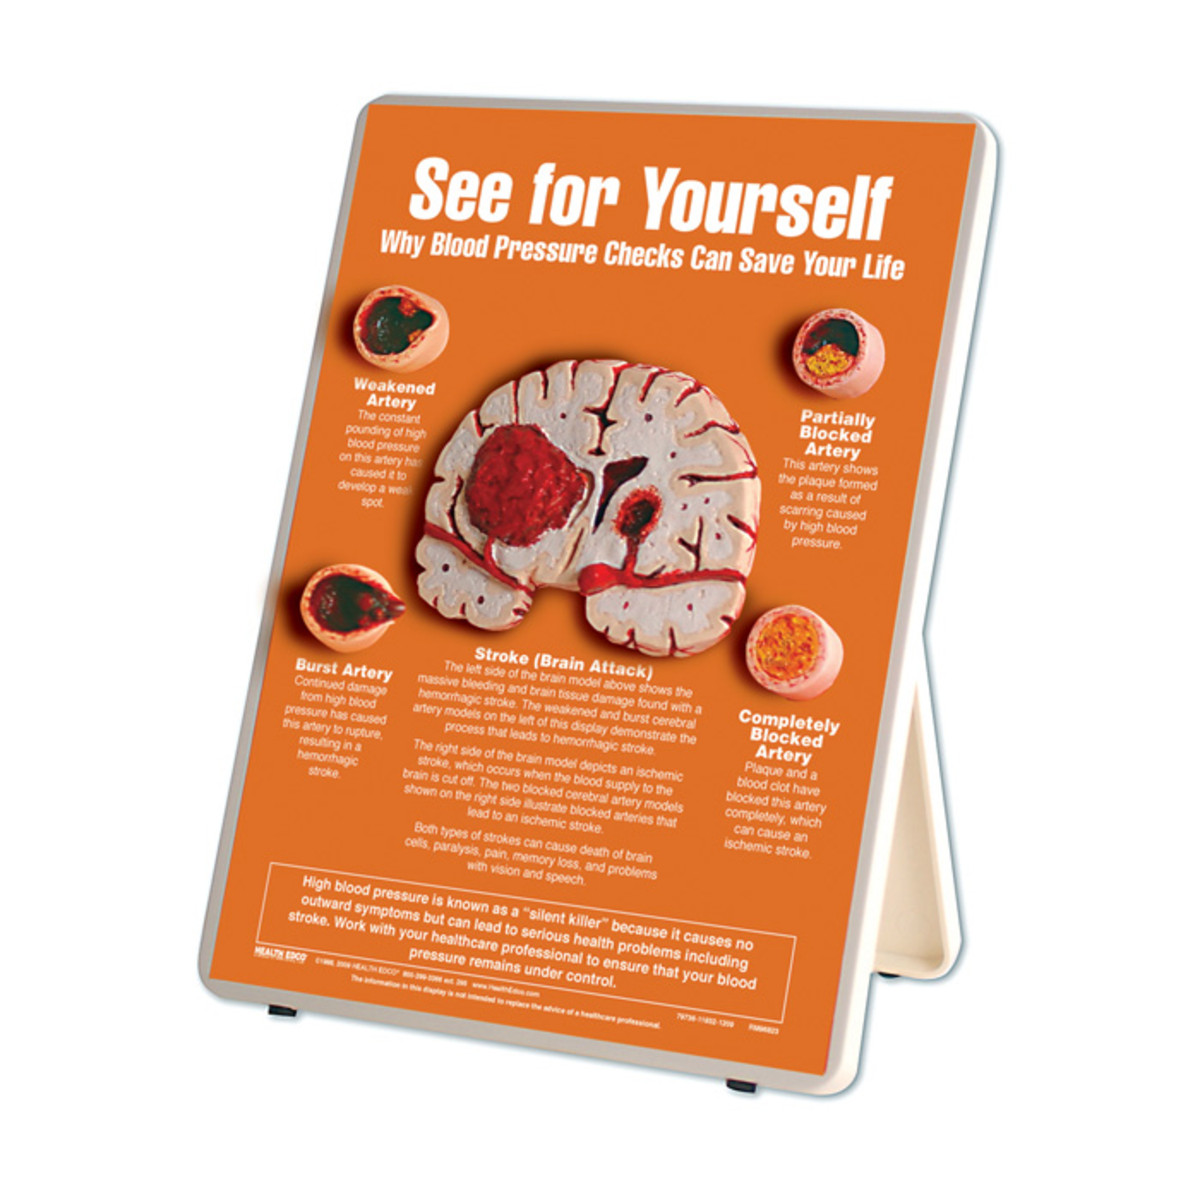 an orange board with 4 cross-sections of arteries and one of a brain that shows the effects of blood pressure like strokes